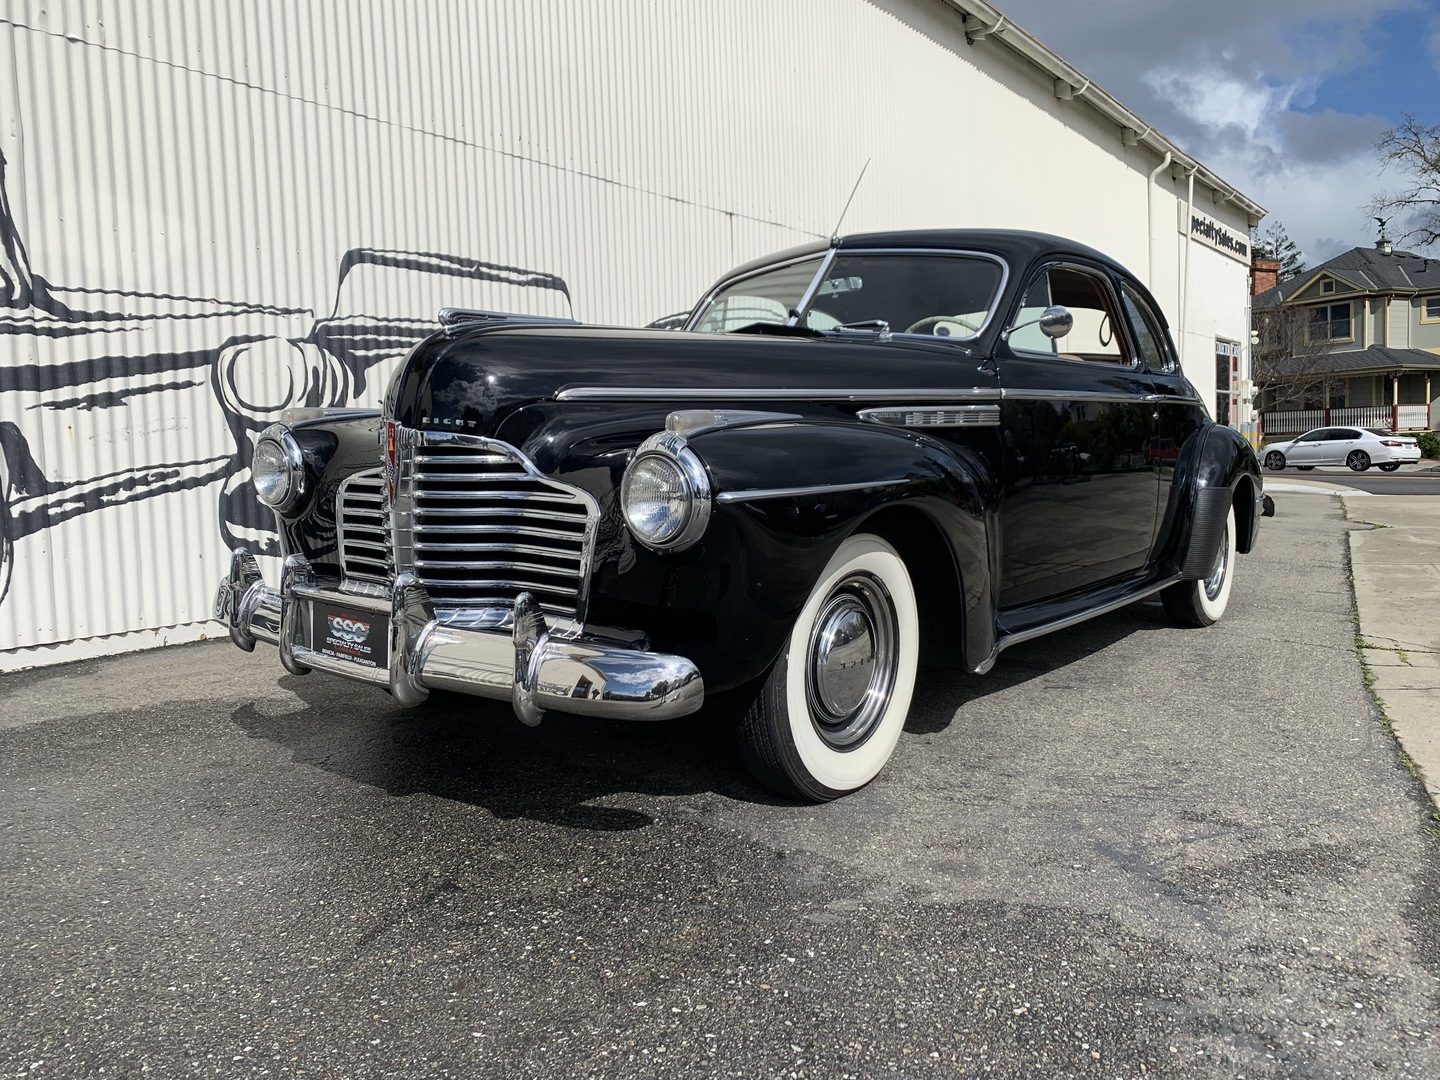 1941 Buick 56S Super Coupe 1941 Buick 56S 23854 Miles Black Coupe